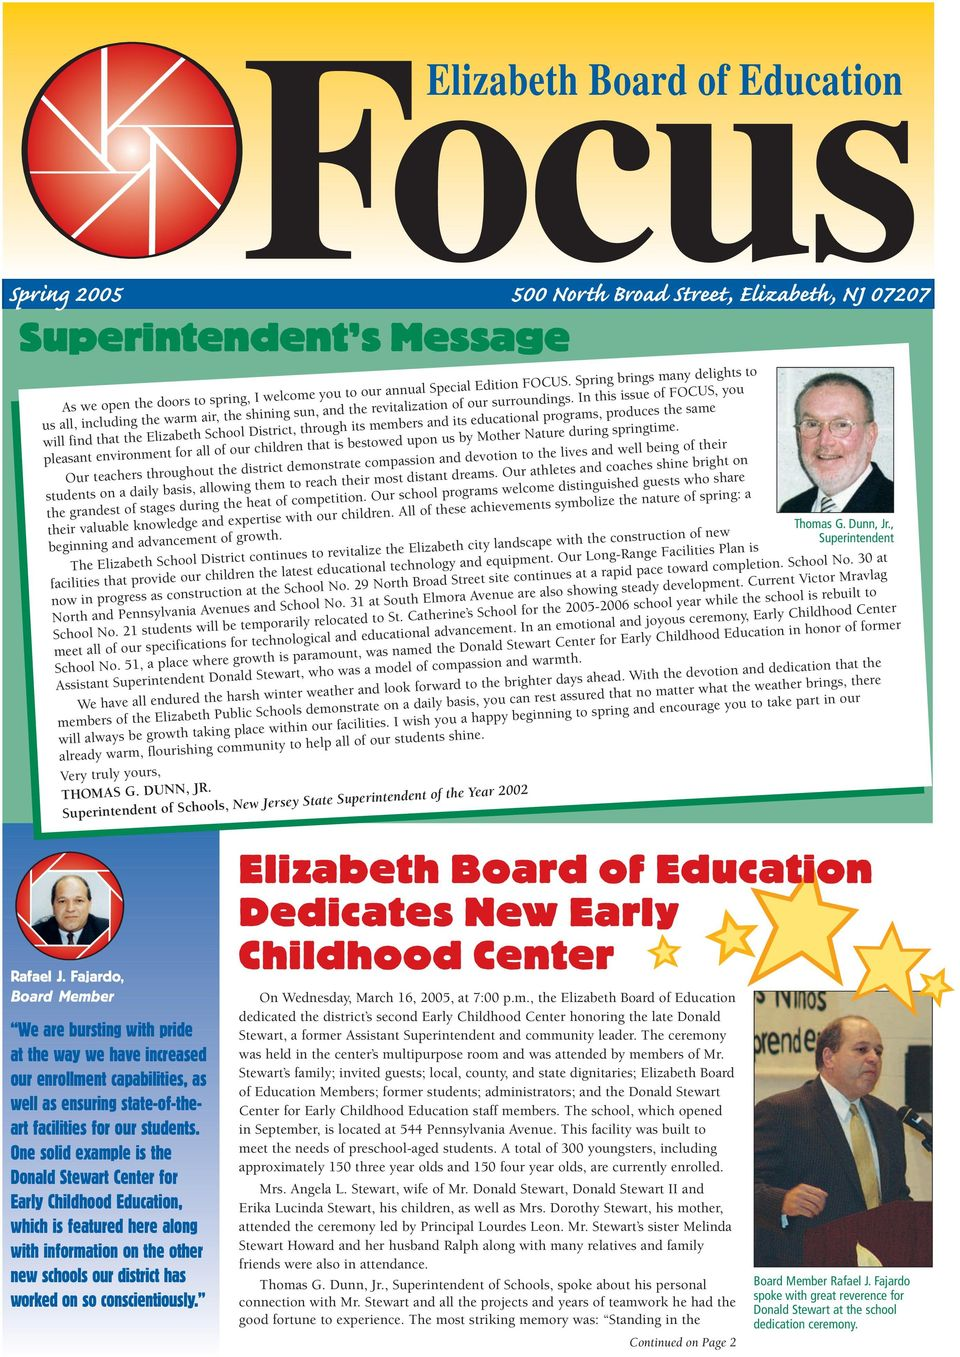 In this issue of FOCUS, you will find that the Elizabeth School District, through its members and its educational programs, produces the same pleasant environment for all of our children that is